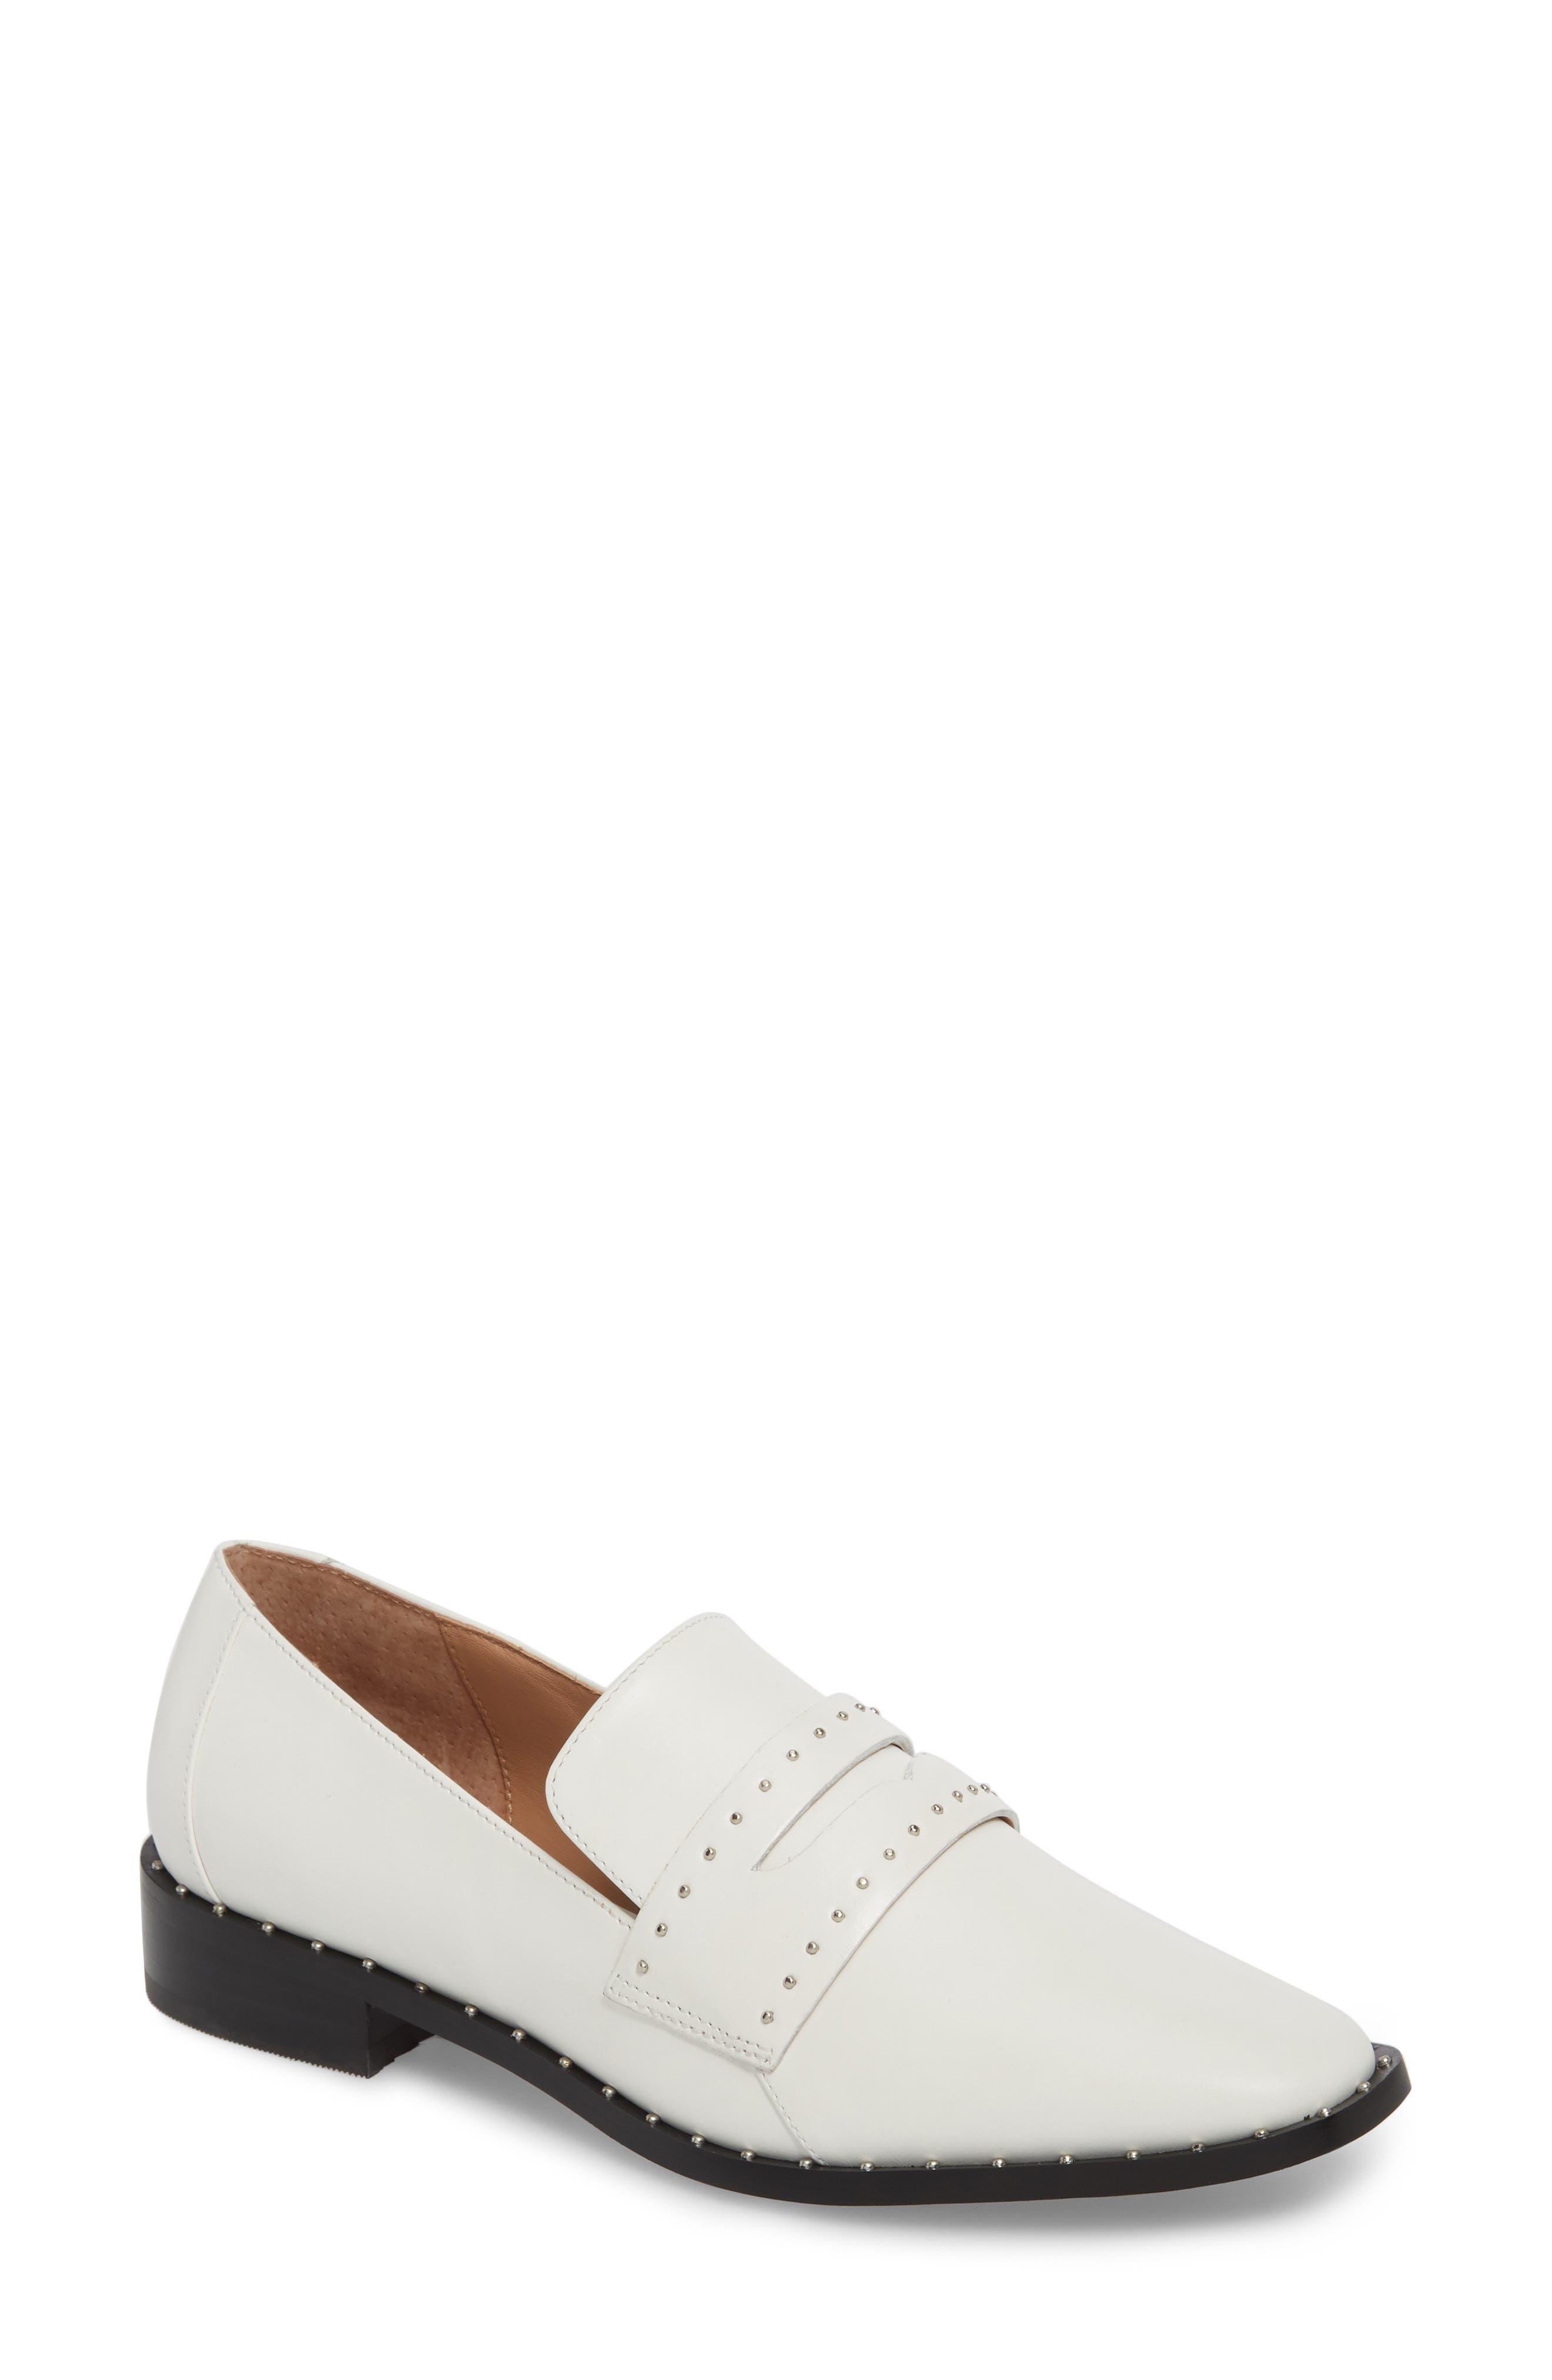 Tara Penny Loafer,                         Main,                         color, Off White Leather